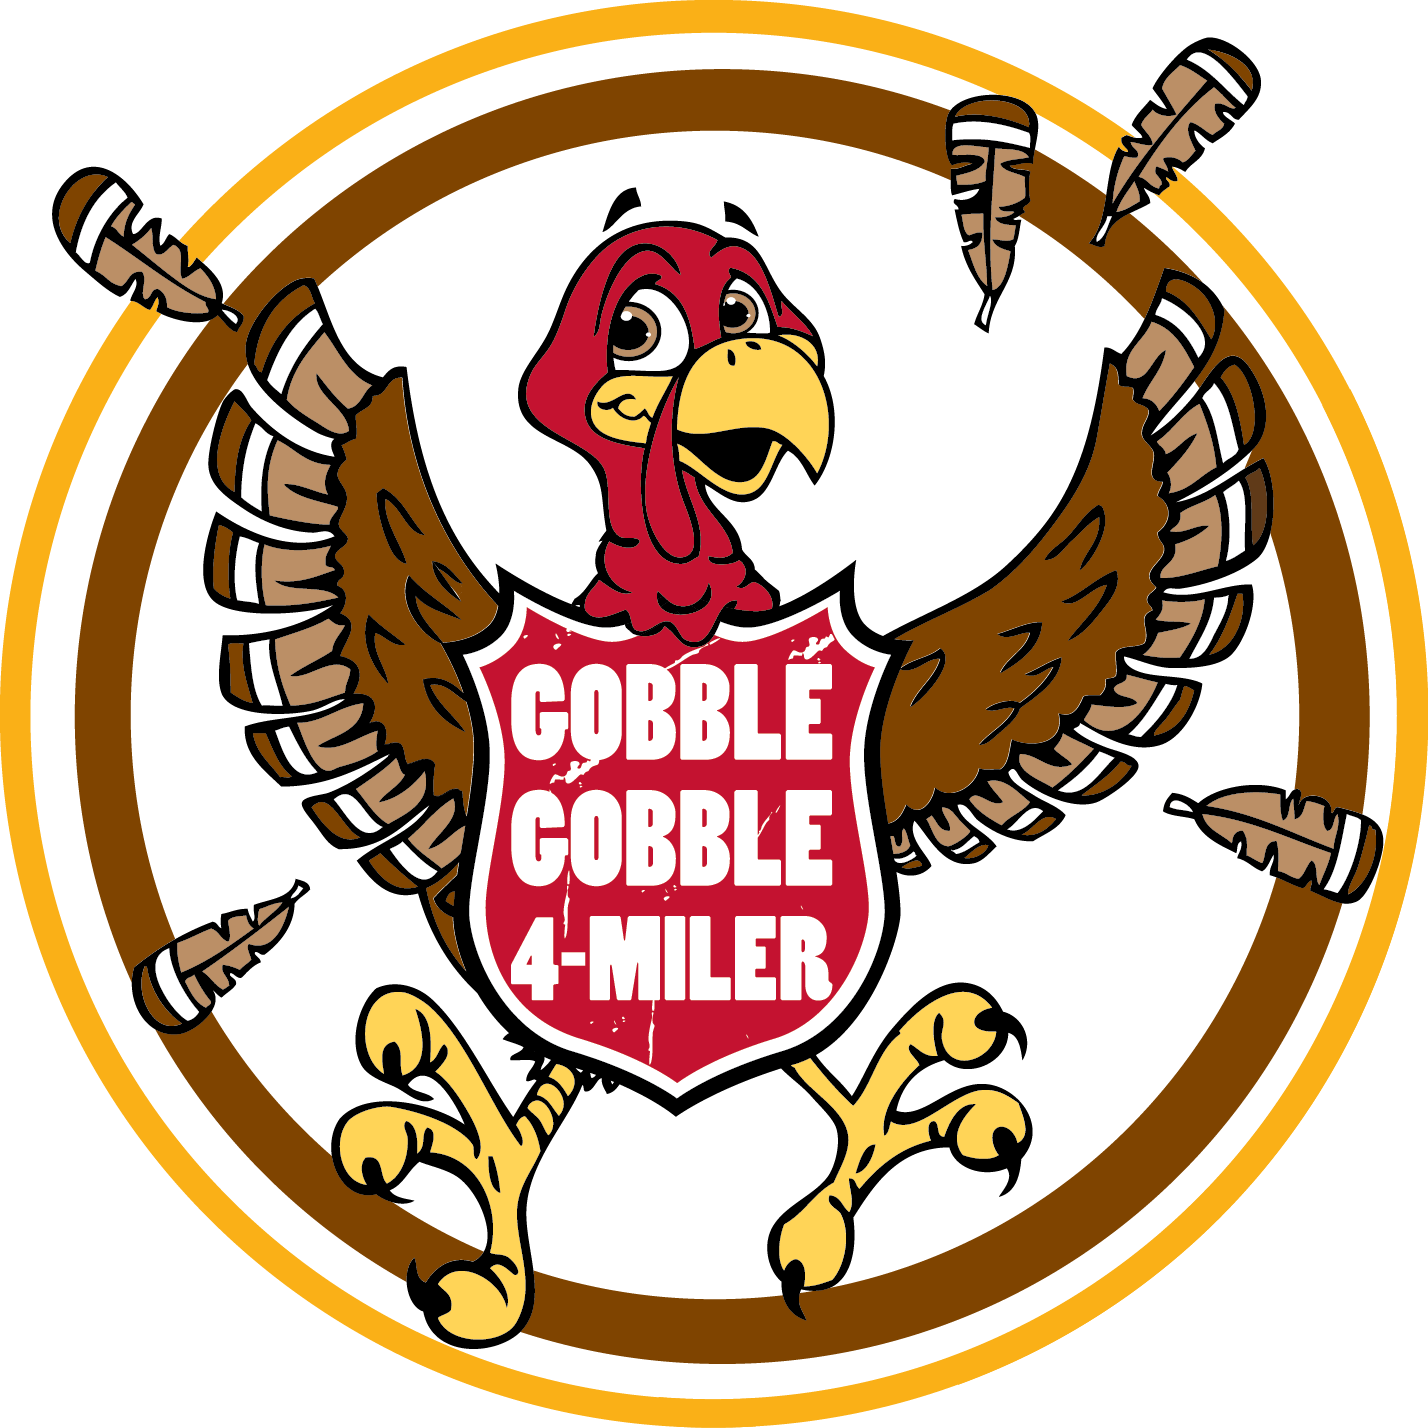 Turkey trop clipart jpg royalty free library About Gobble - Gobble Gobble Four Miler ™ jpg royalty free library